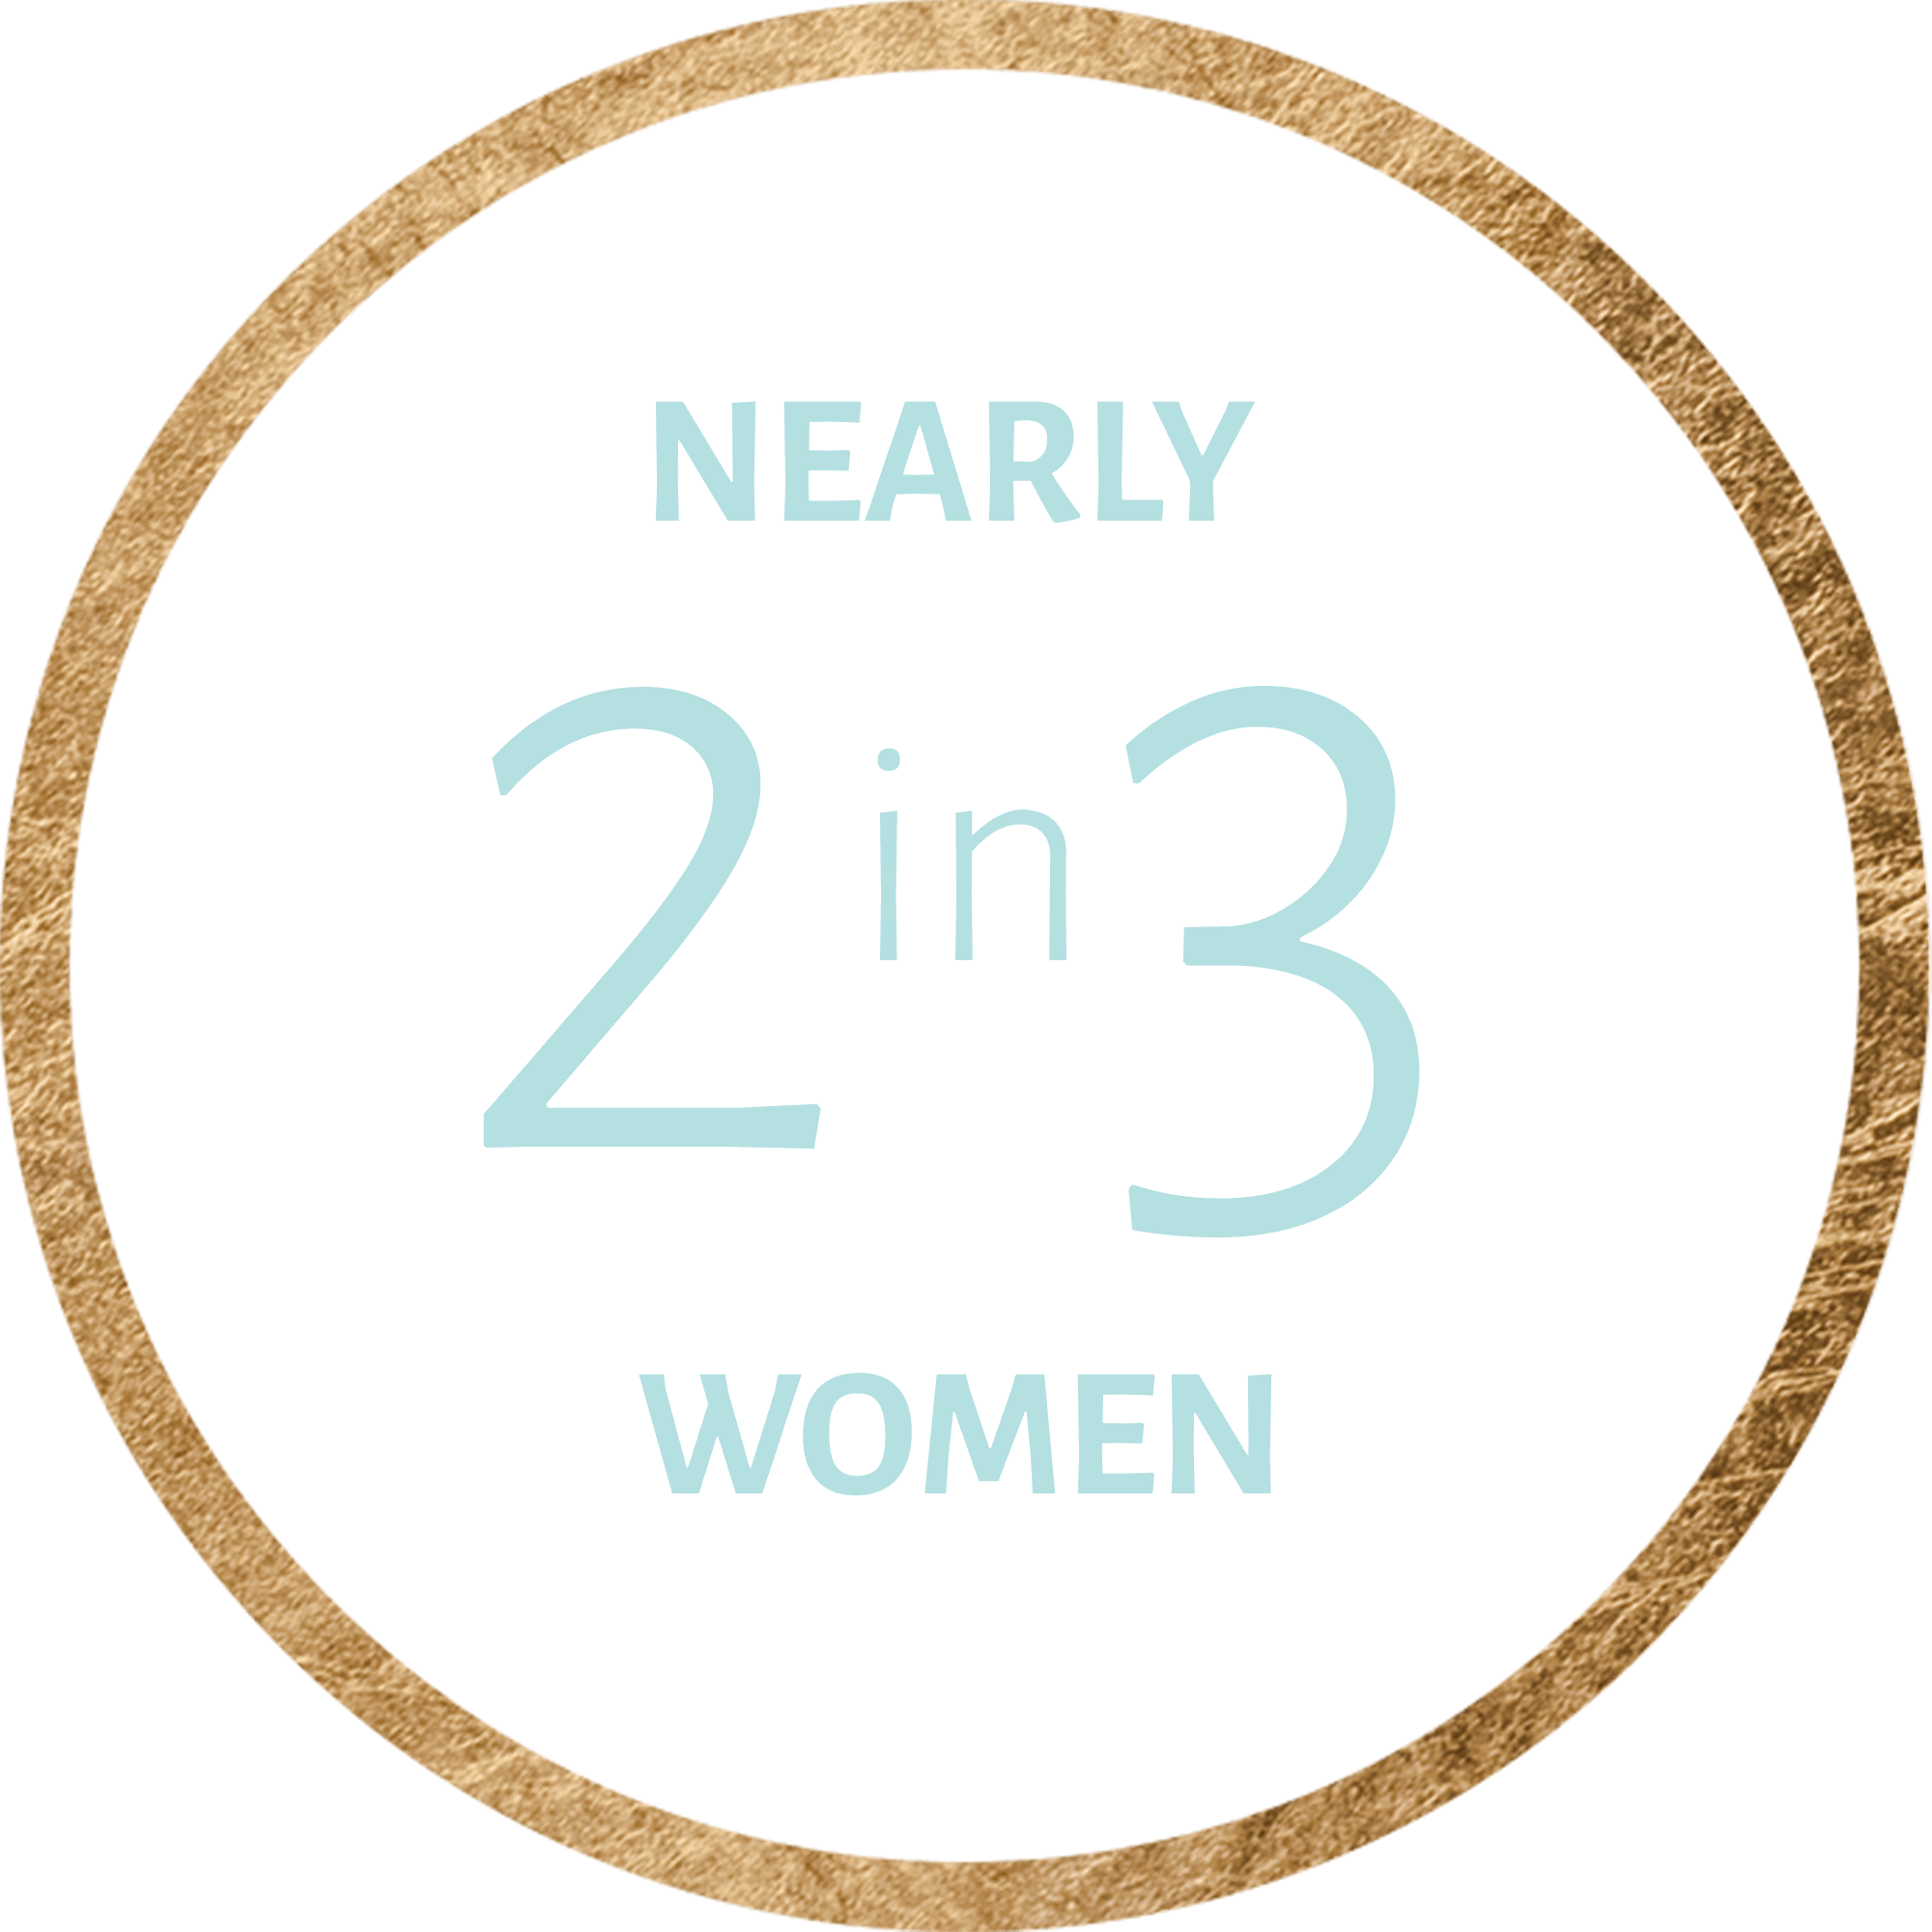 Nearly 2 in 3 women